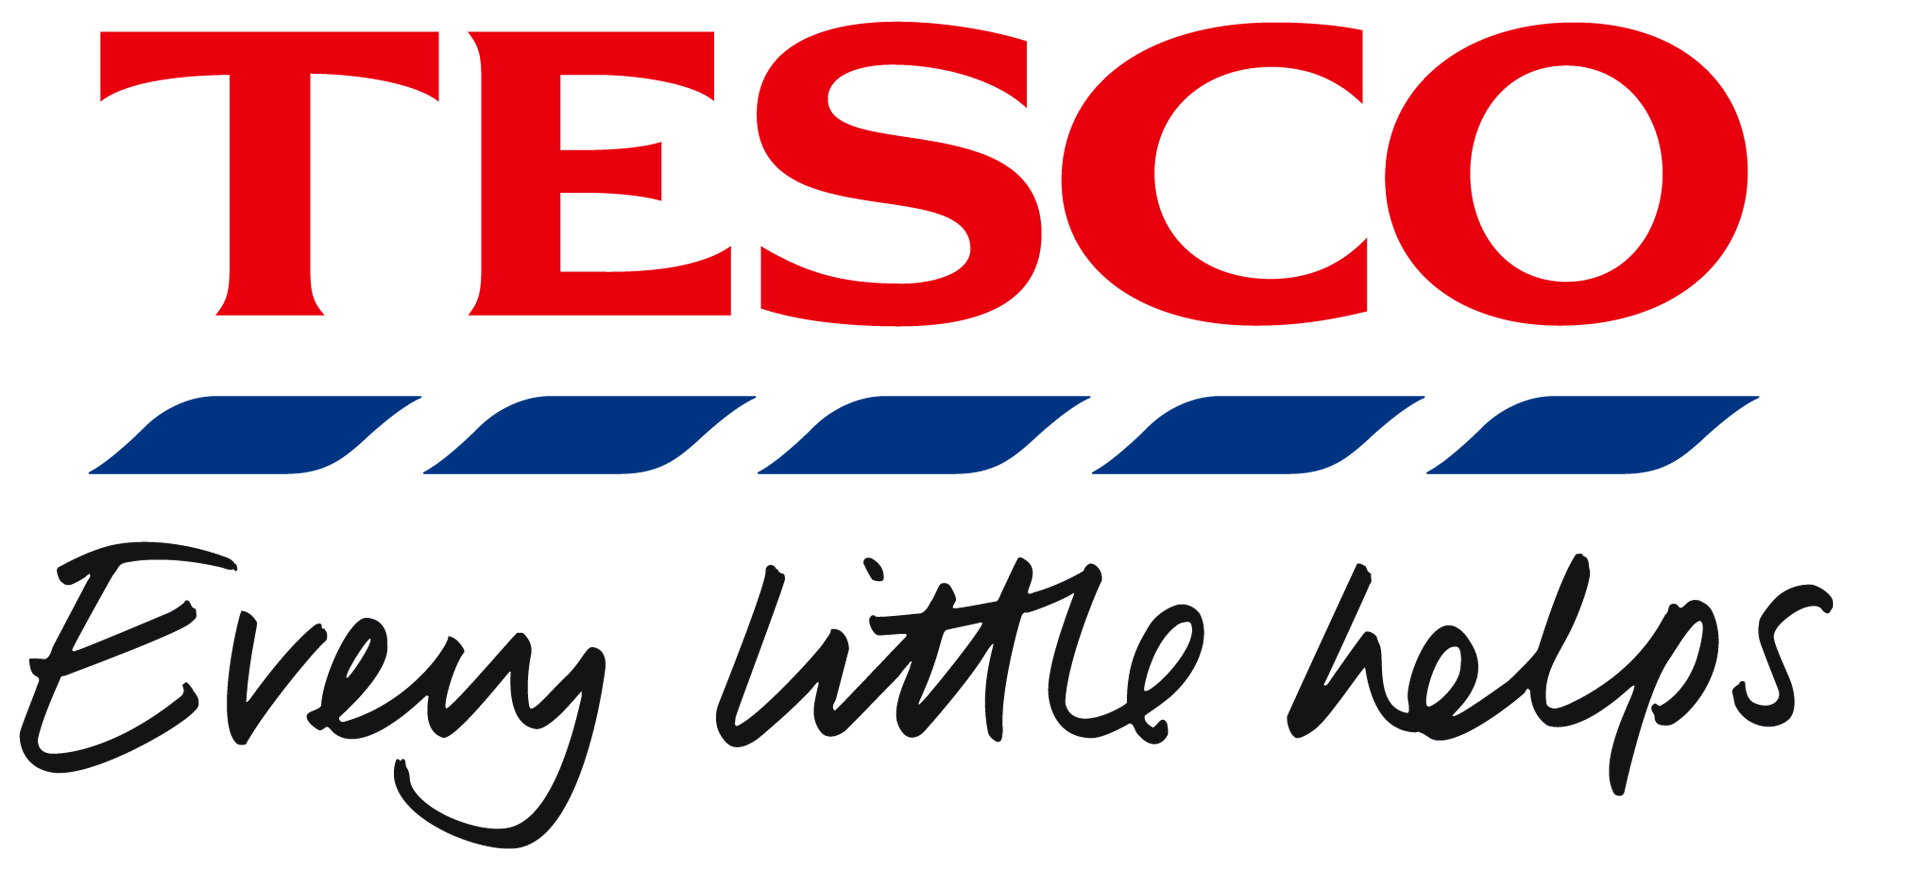 https://www.chargepoint.co.uk/wp-content/uploads/2014/06/Tesco-Logo.jpg